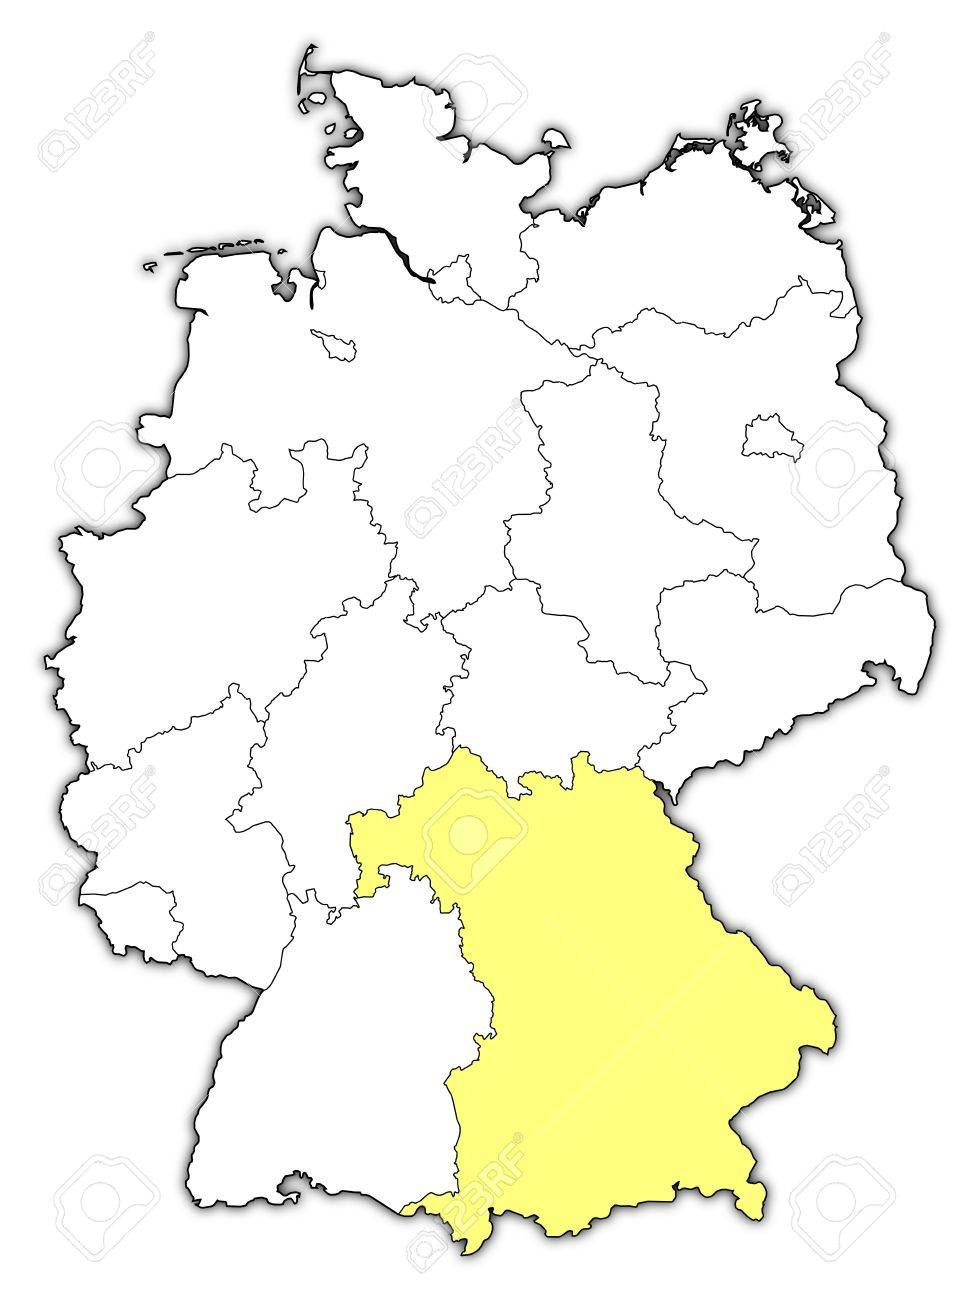 Map Of Germany Bavaria.Bavaria State Map Germany Vector The Odyssey Map